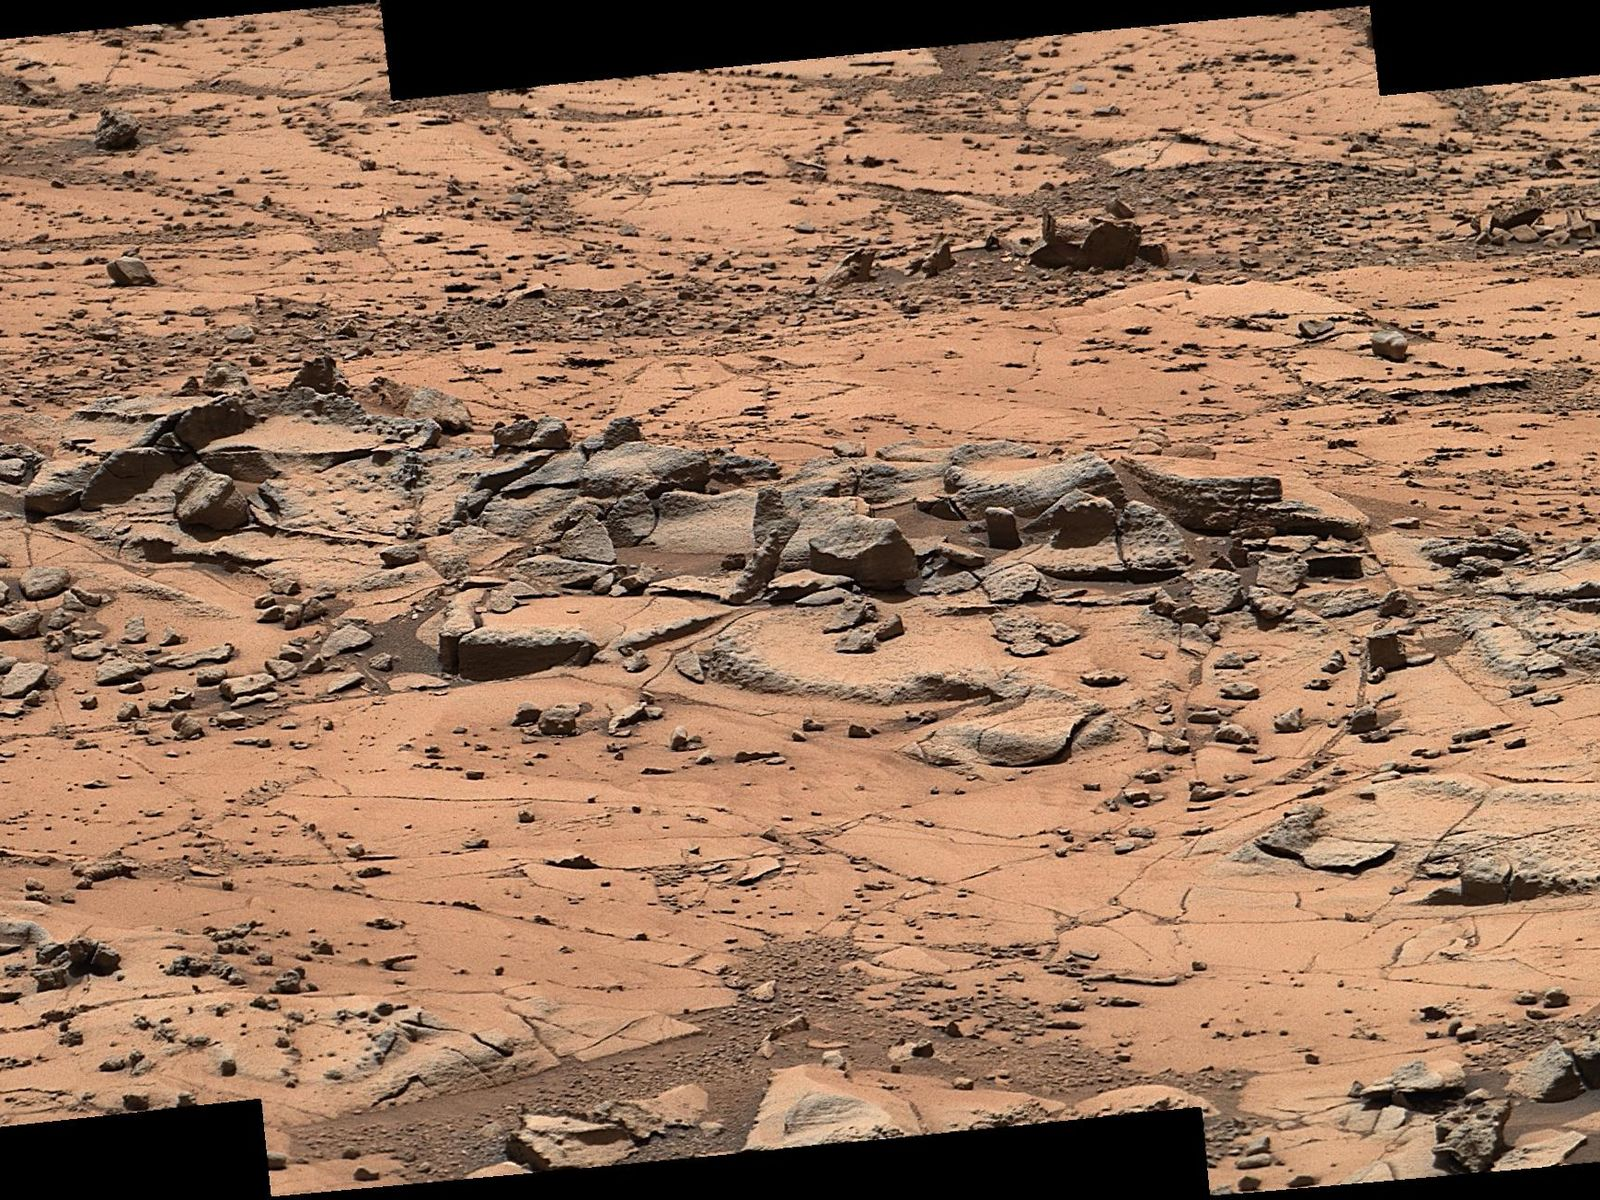 Space Images Erosion Resistance at Pink Cliffs at Base of 1600x1200